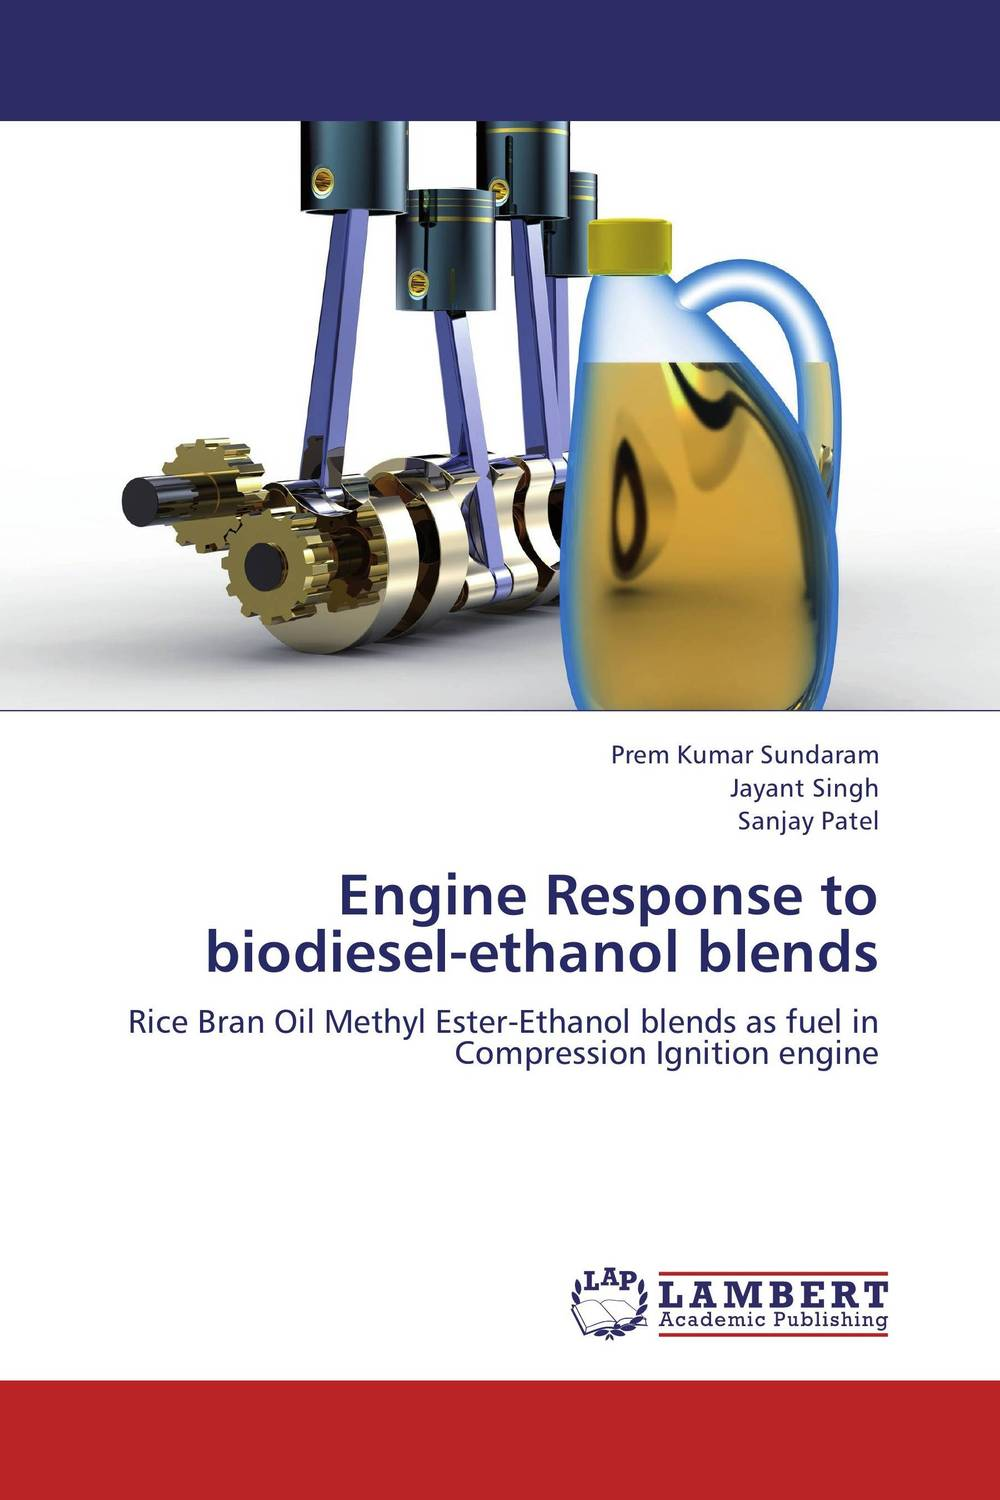 Engine Response to biodiesel-ethanol blends a study on vcr diesel engine with preheated cottonseed methyl ester